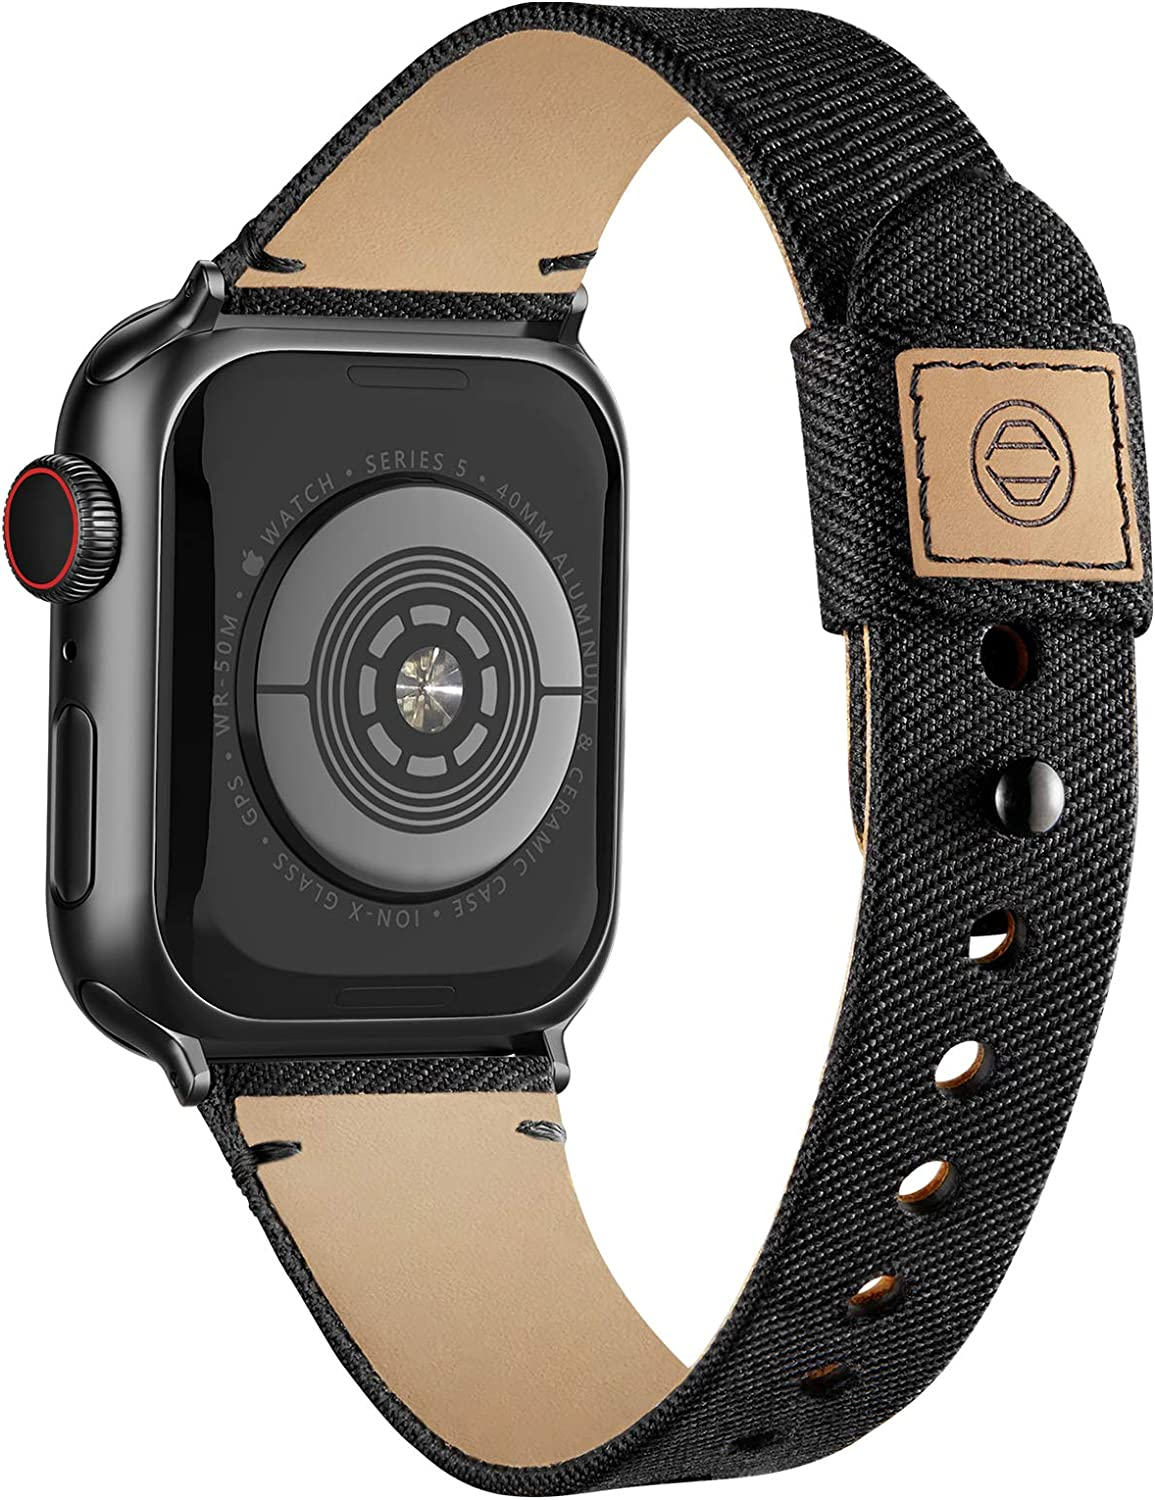 Compatible with Apple Watch Band 38mm 40mm 42mm 44mm for Women Men, Slim Fabric Canvas Band with Soft Leather Lining and Snap Button for Apple Watch Series 6/5/4/3/2/1 SE, Black 38/40mm